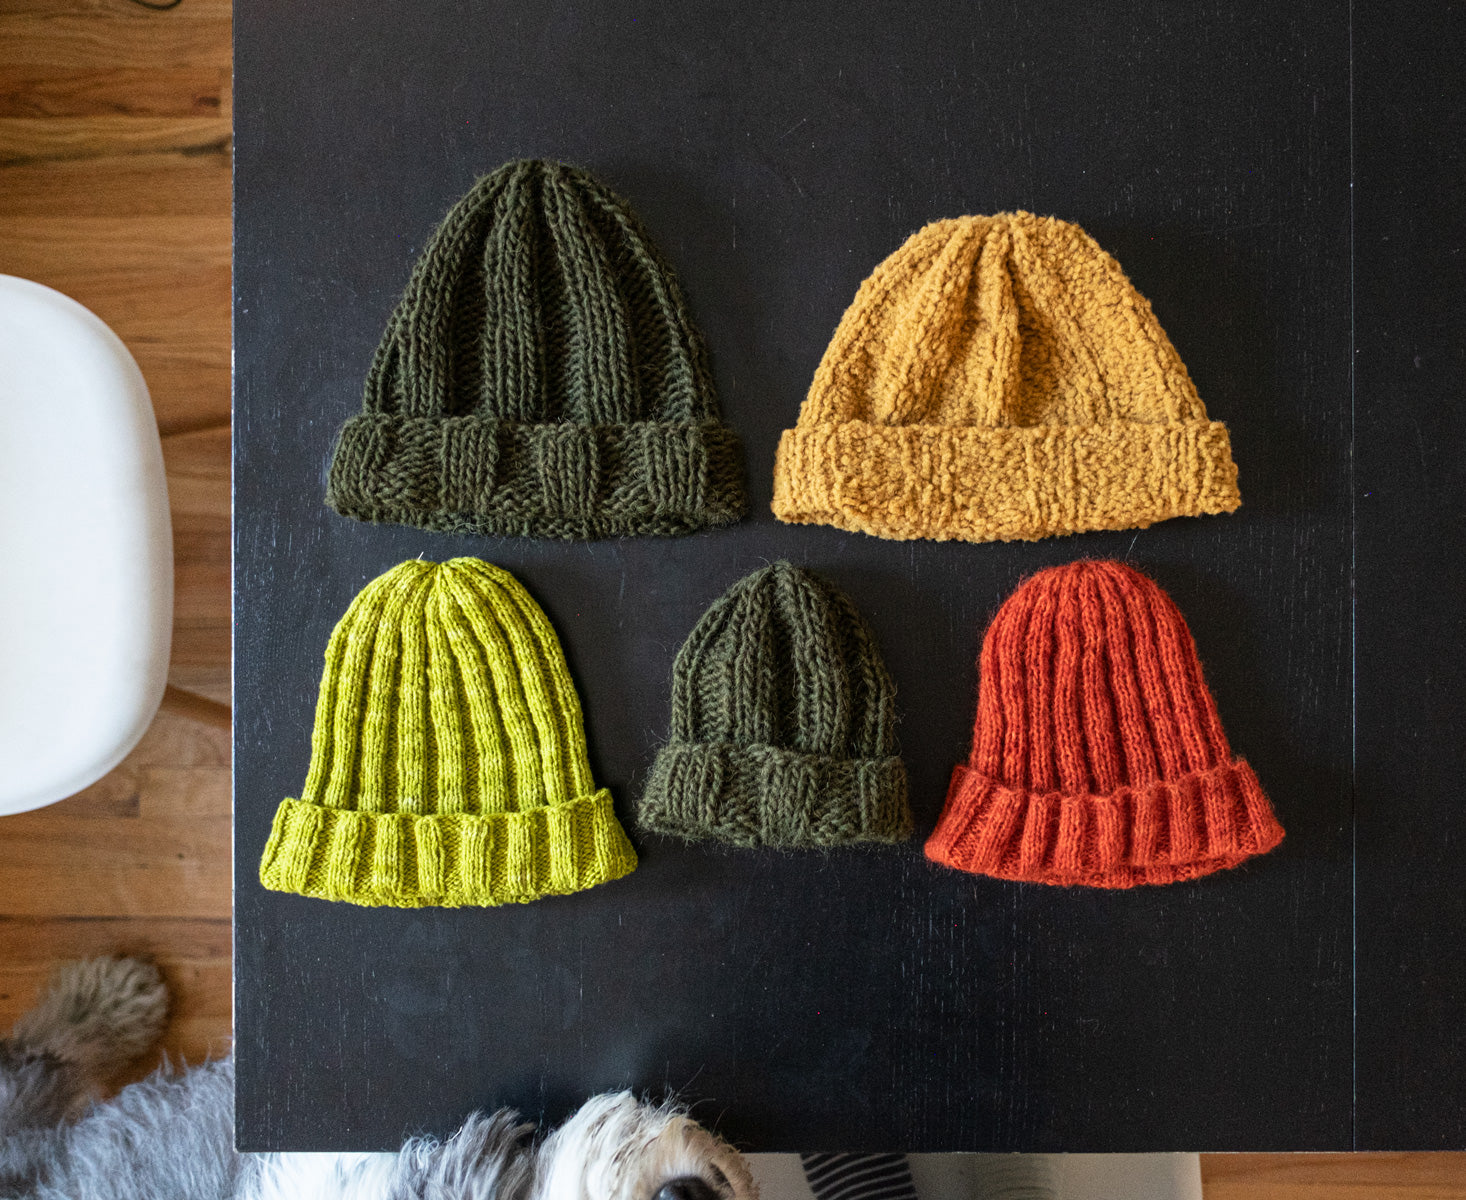 A series of rib-knit beanies with folded brims are laid out on a black table top. They are made in a variety of sizes and textures but share the same pleasingly simple construction. They seem to be laid out like eager pupils before a teacher as the nose of a sheepdog appears to lean in to inspect them.